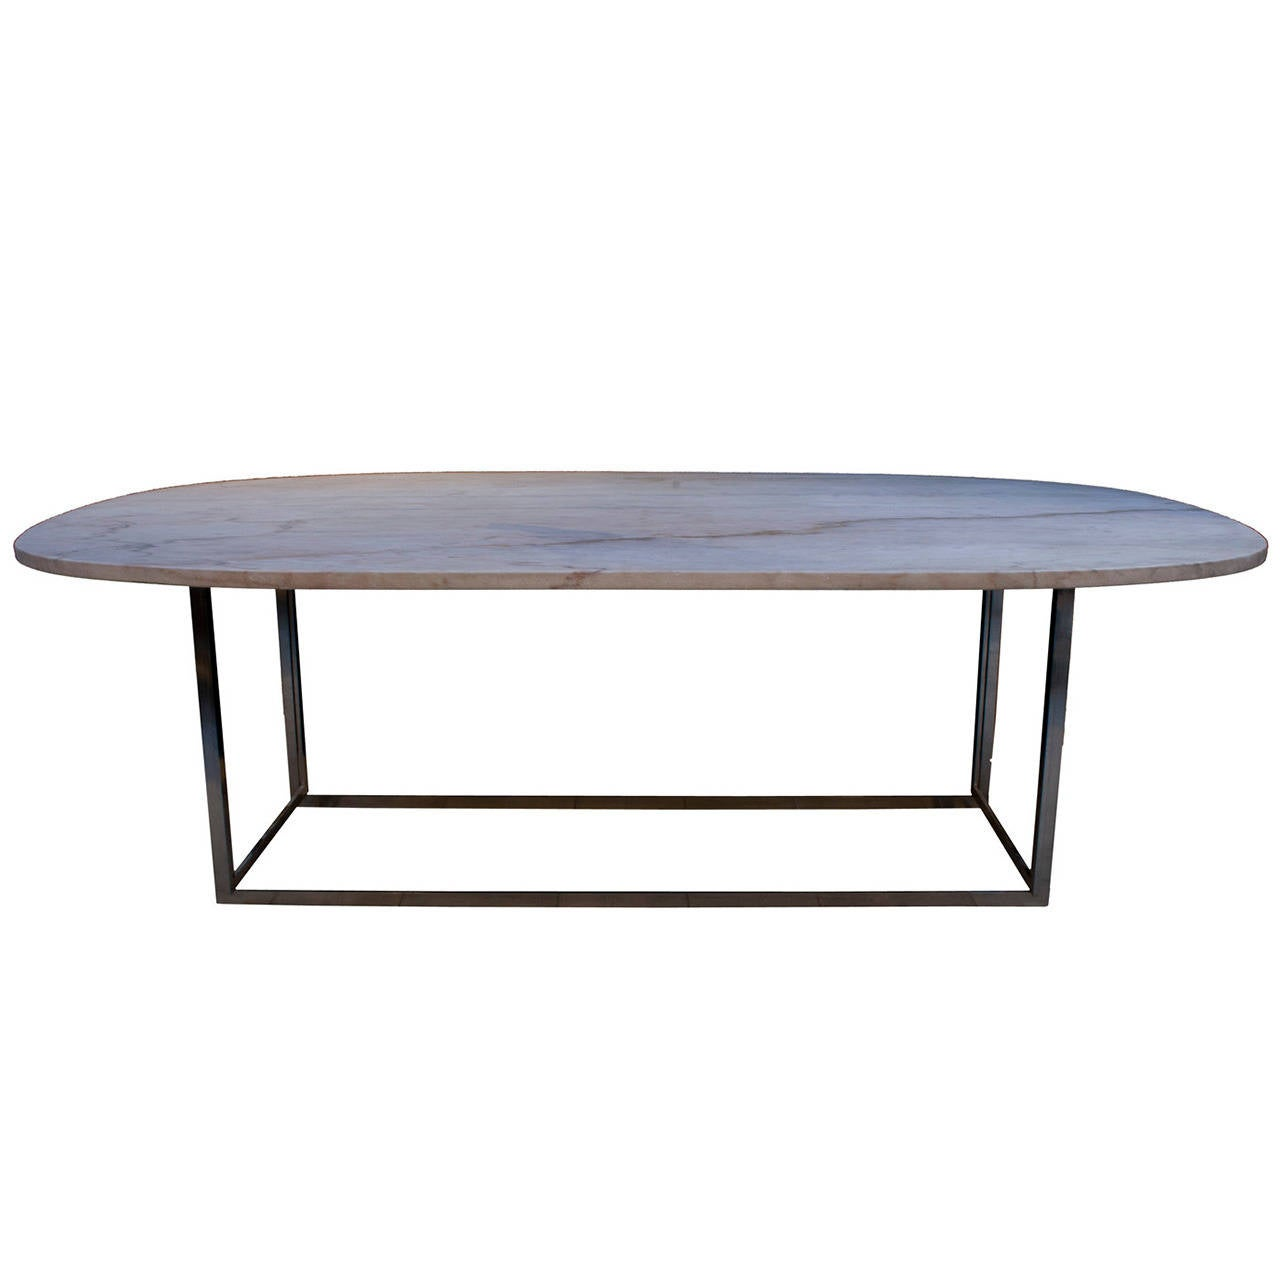 stone top dining table at 1stdibs On stone dining table